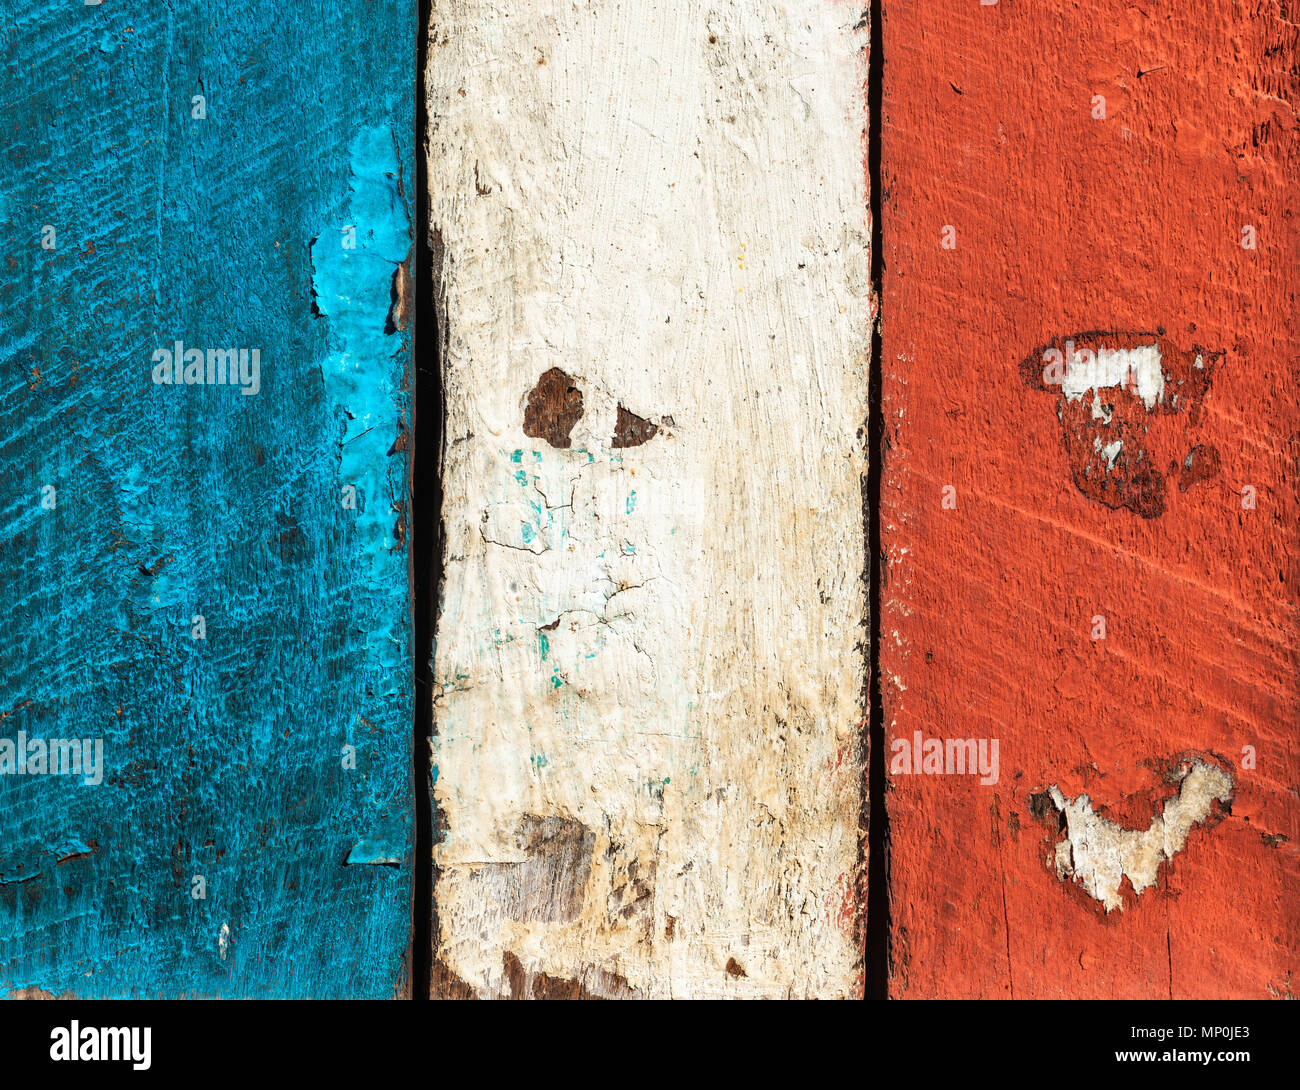 French flag made of painted wood planks. Grungy texture or background. - Stock Image